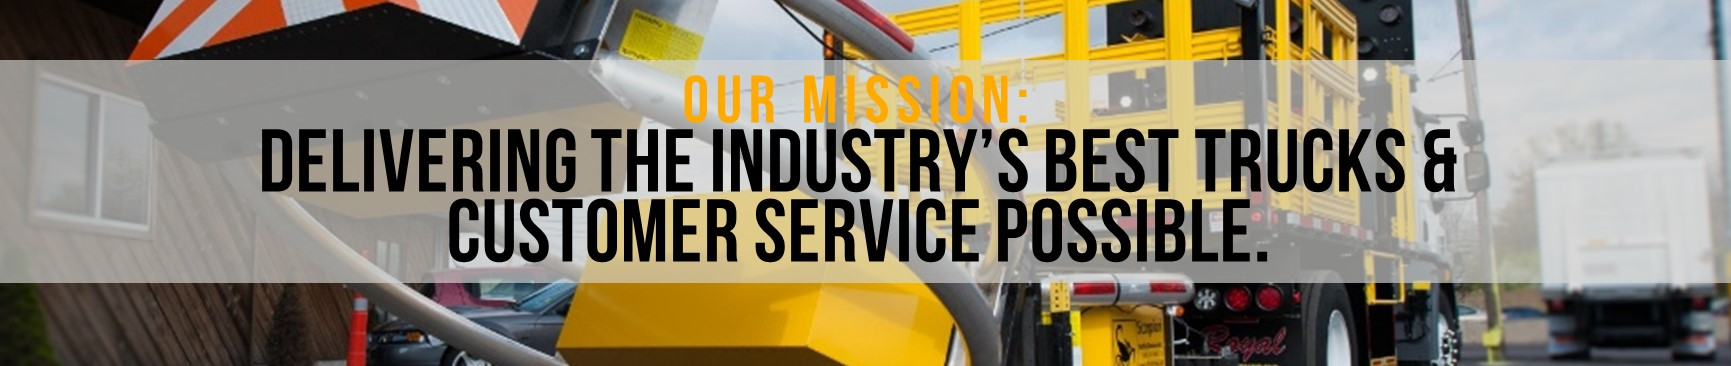 Royal Truck and Equipment Mission Statement